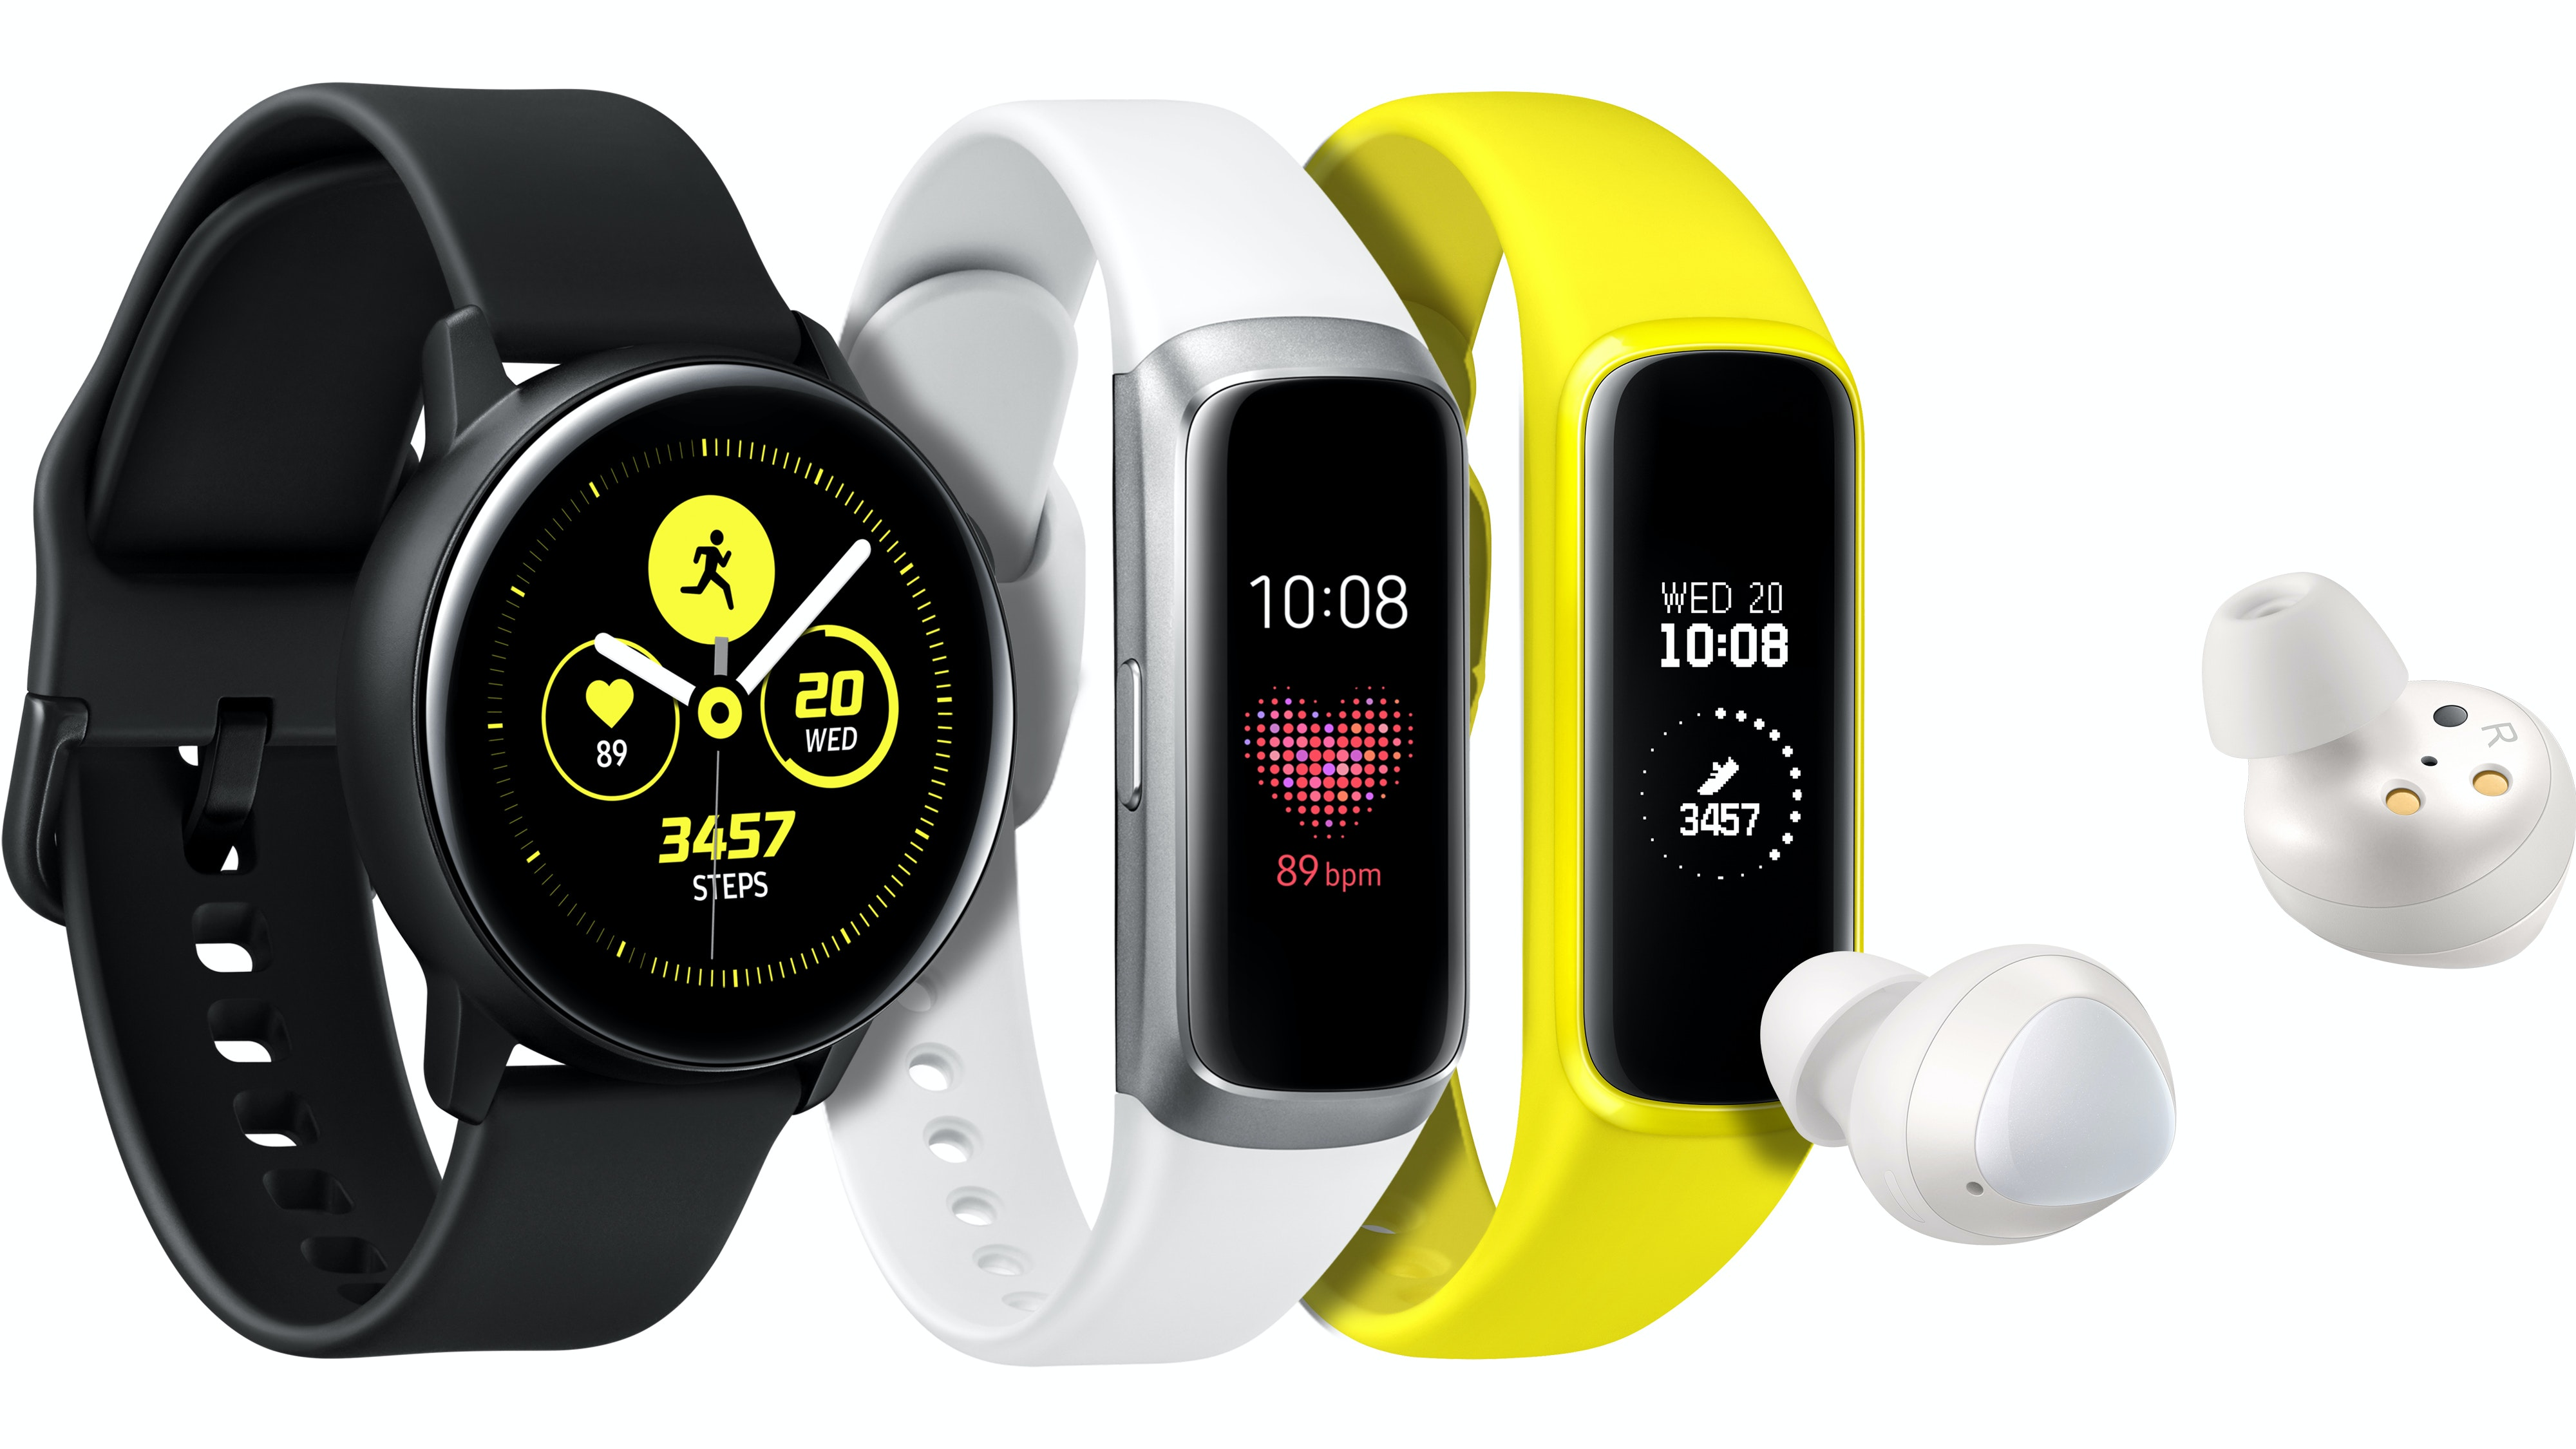 Galaxy Watch Active - Latest generation of the Galaxy Watch by Samsung